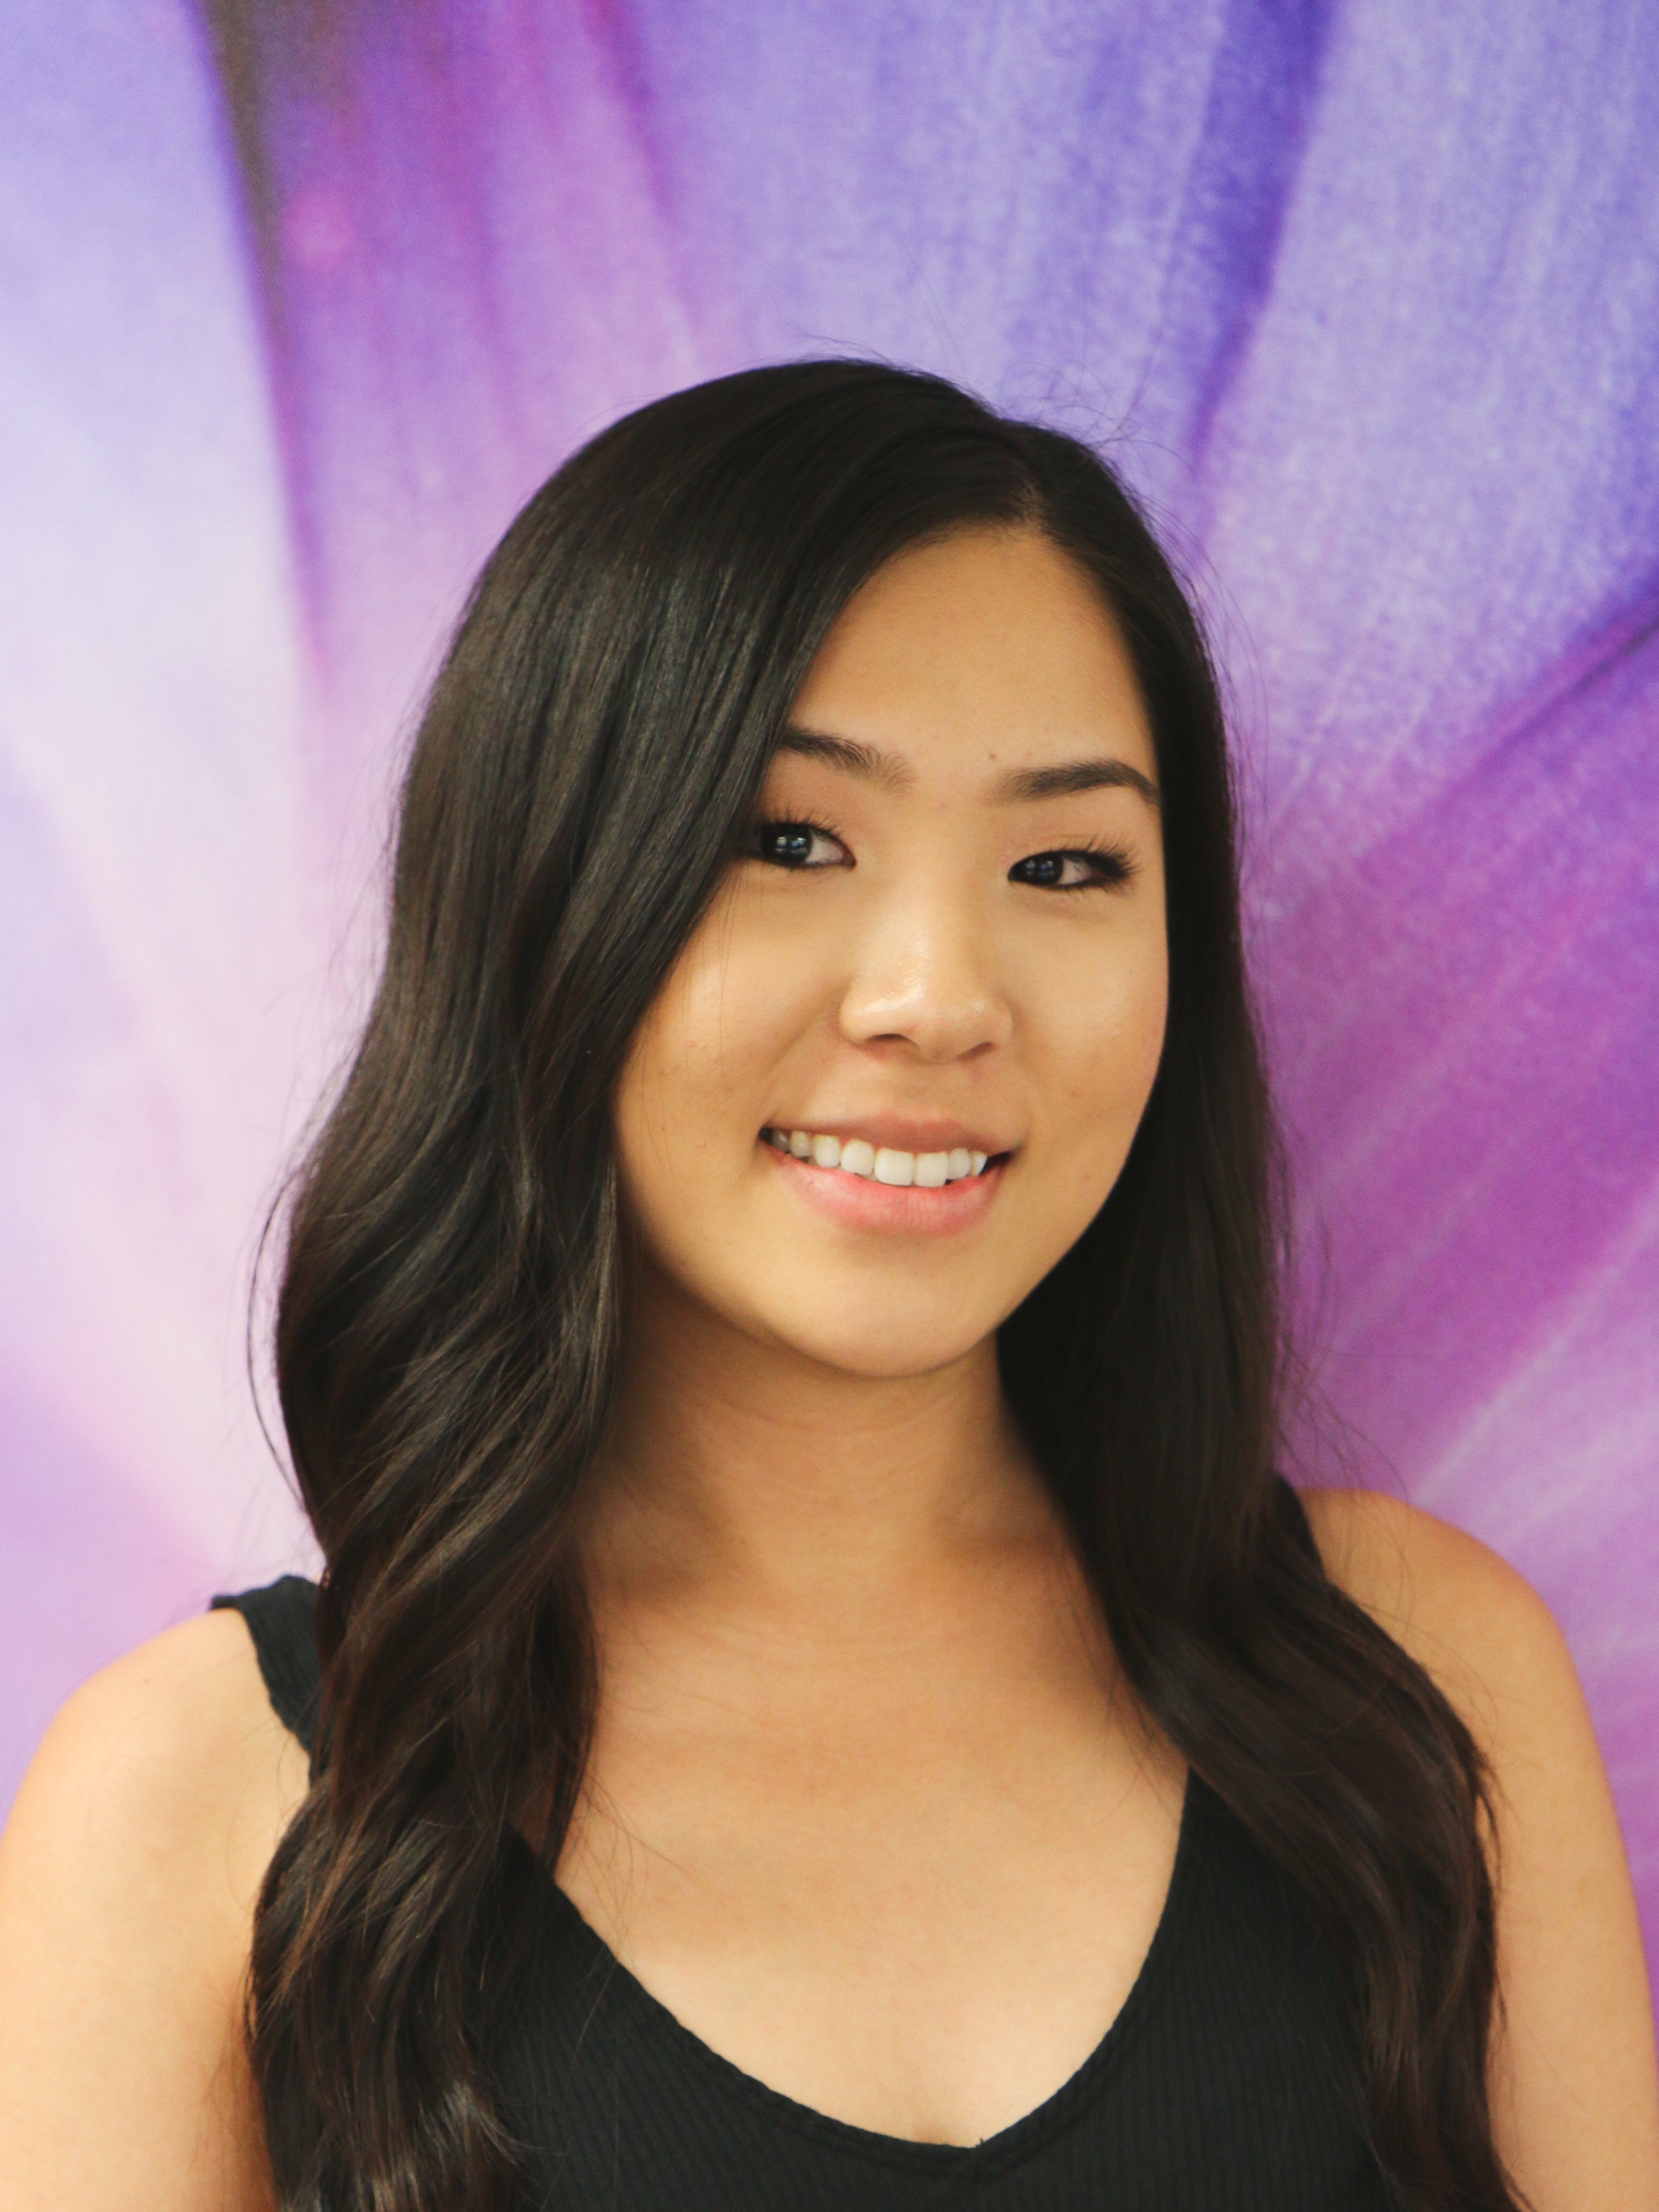 PROGRAMS & FUNDRAISING CO-CHAIR    Kyli Kim   Marketing Assistant Simplicity HR by ALTRES    What would you like to see more of in Advertising in Hawaii?   I would like to see more local businesses utilizing social media to their advantage. It could be a great way for them to build brand awareness and engage with their customers.